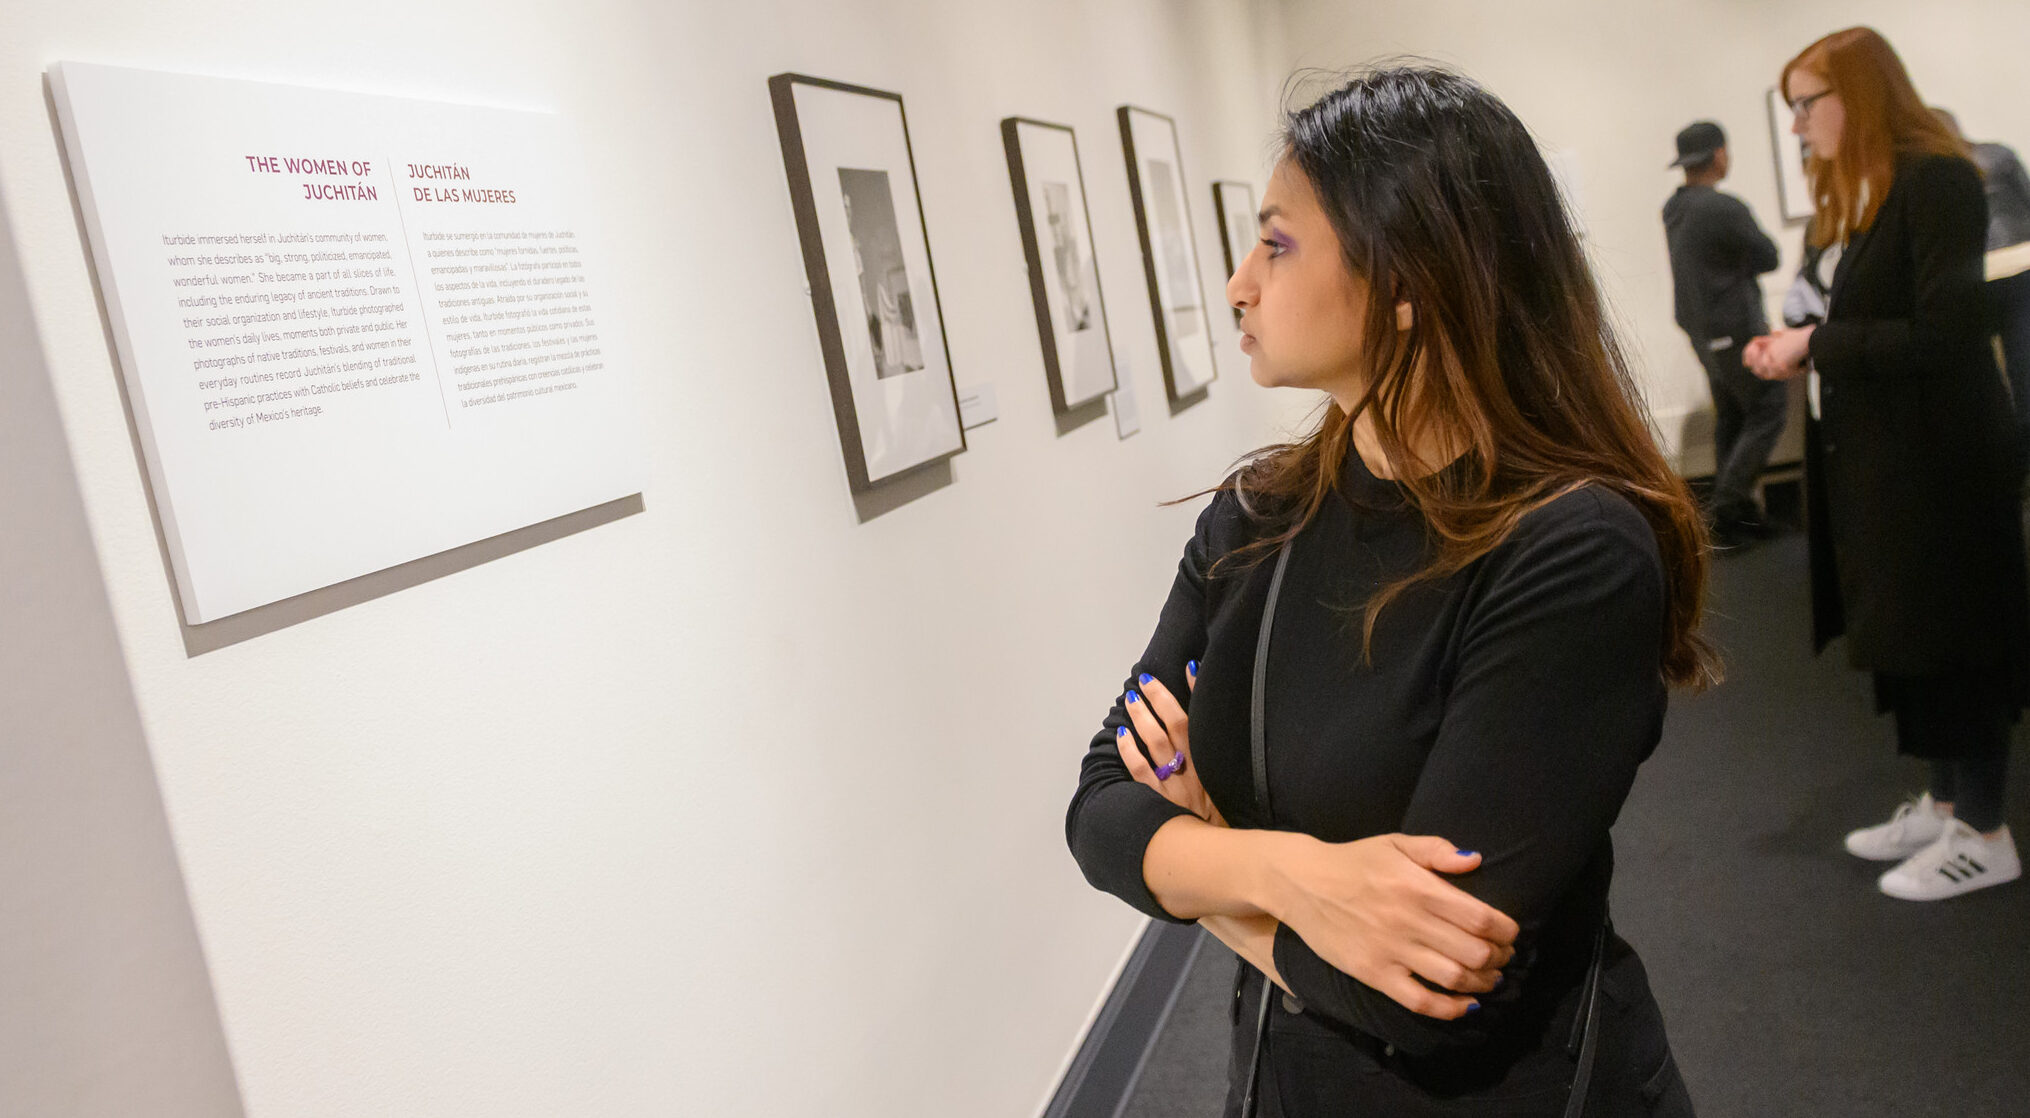 A medium light-skinned young woman in a black top crosses her arms while reading a gallery exhibition label intently.